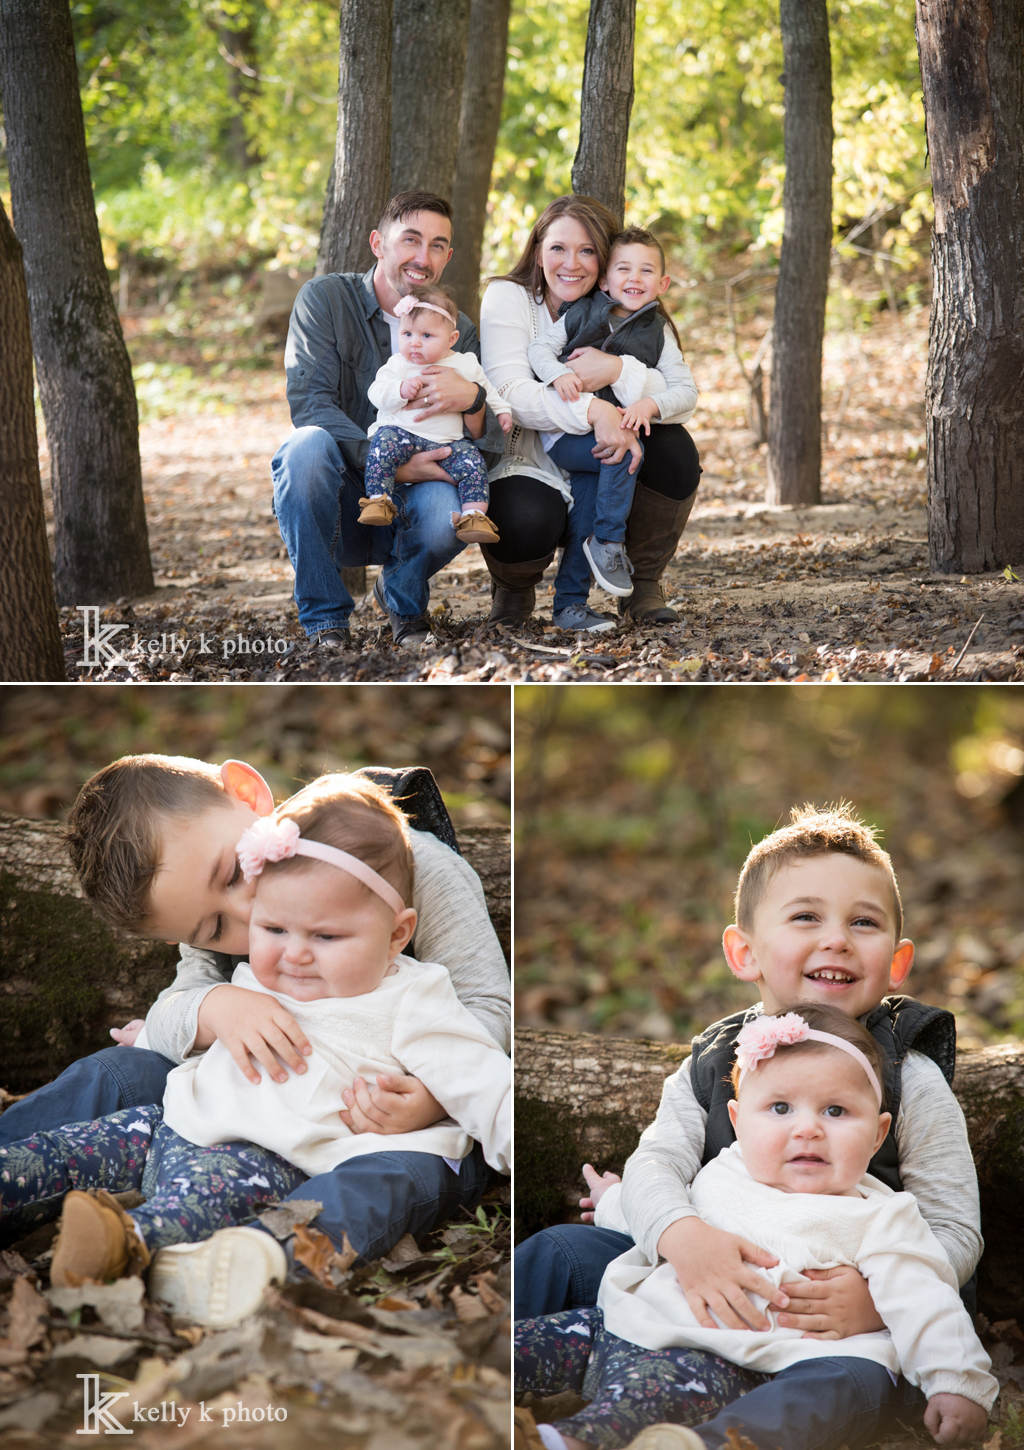 stillwater-familyphotography-1